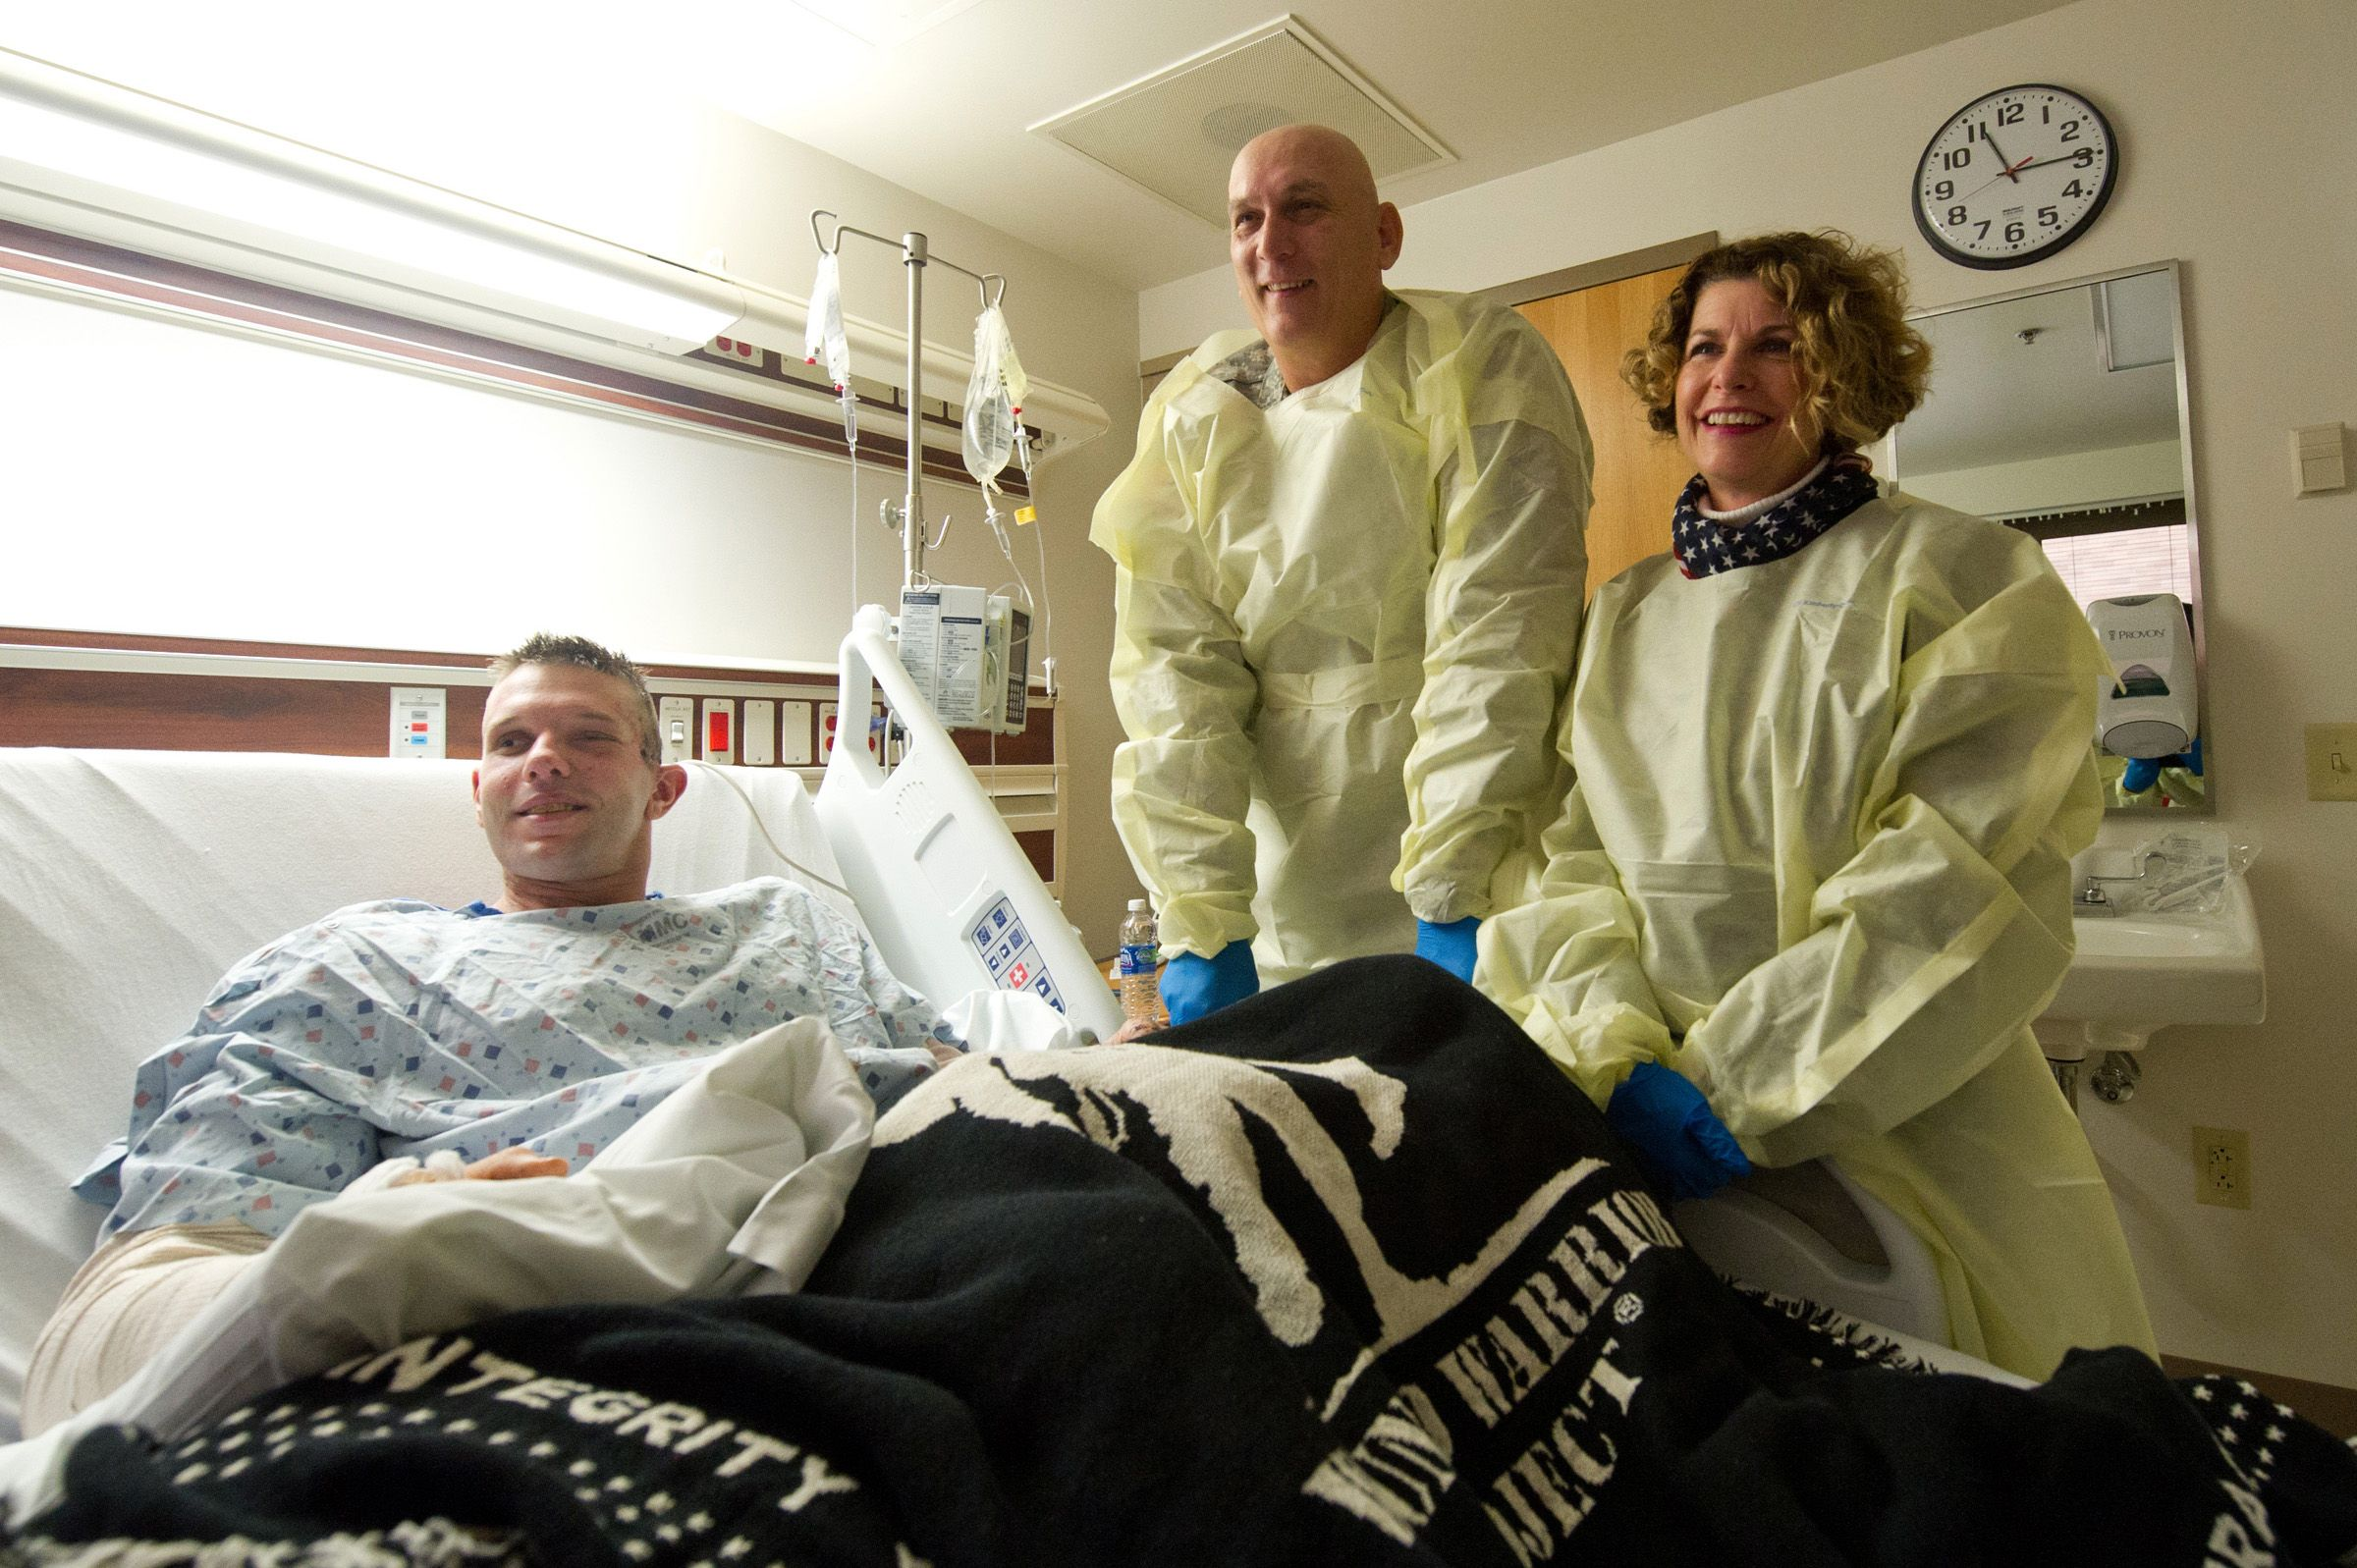 Me and my wife, Linda, share a laugh with Sgt. Brandon